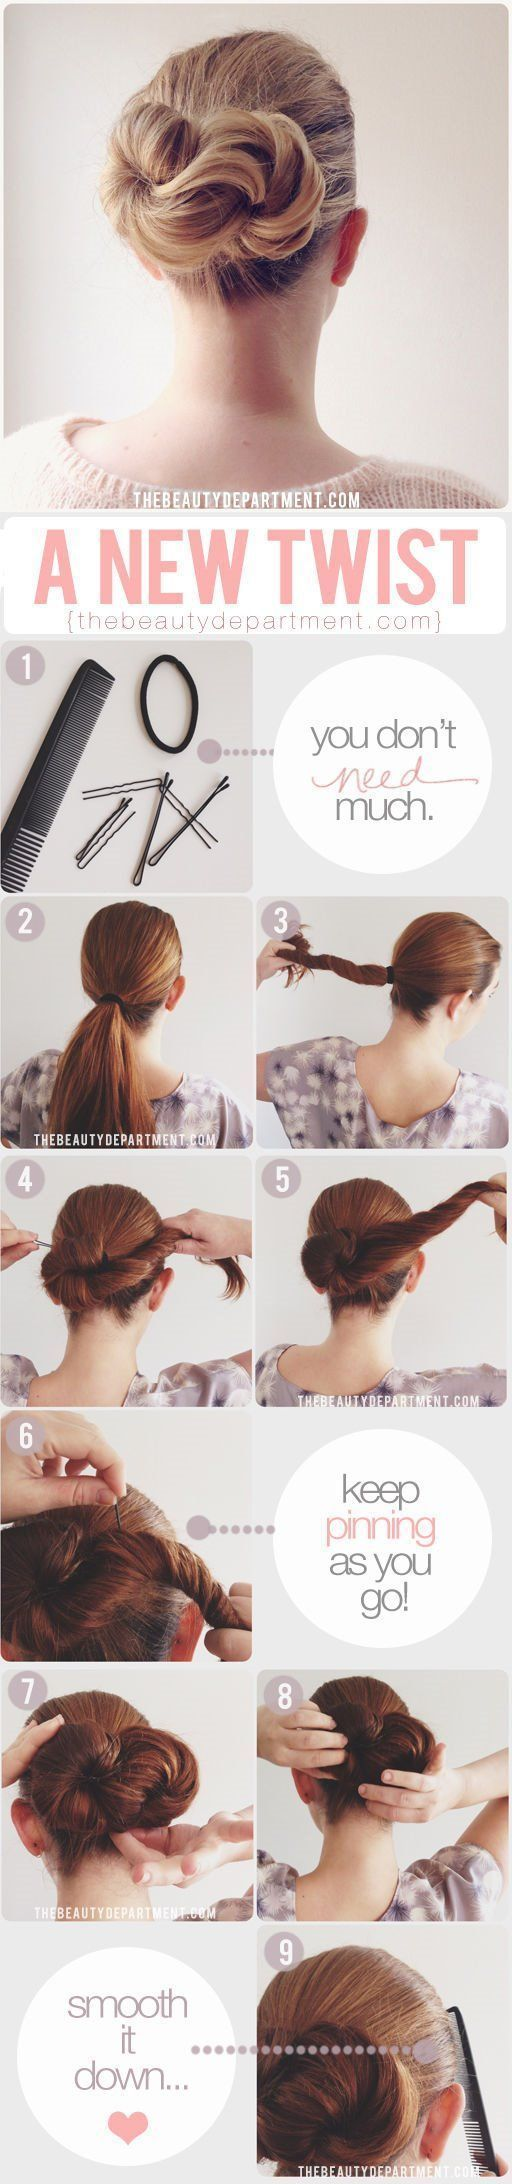 Long hair style: twist updo. Very cute and easy enough to do as an every day hai...